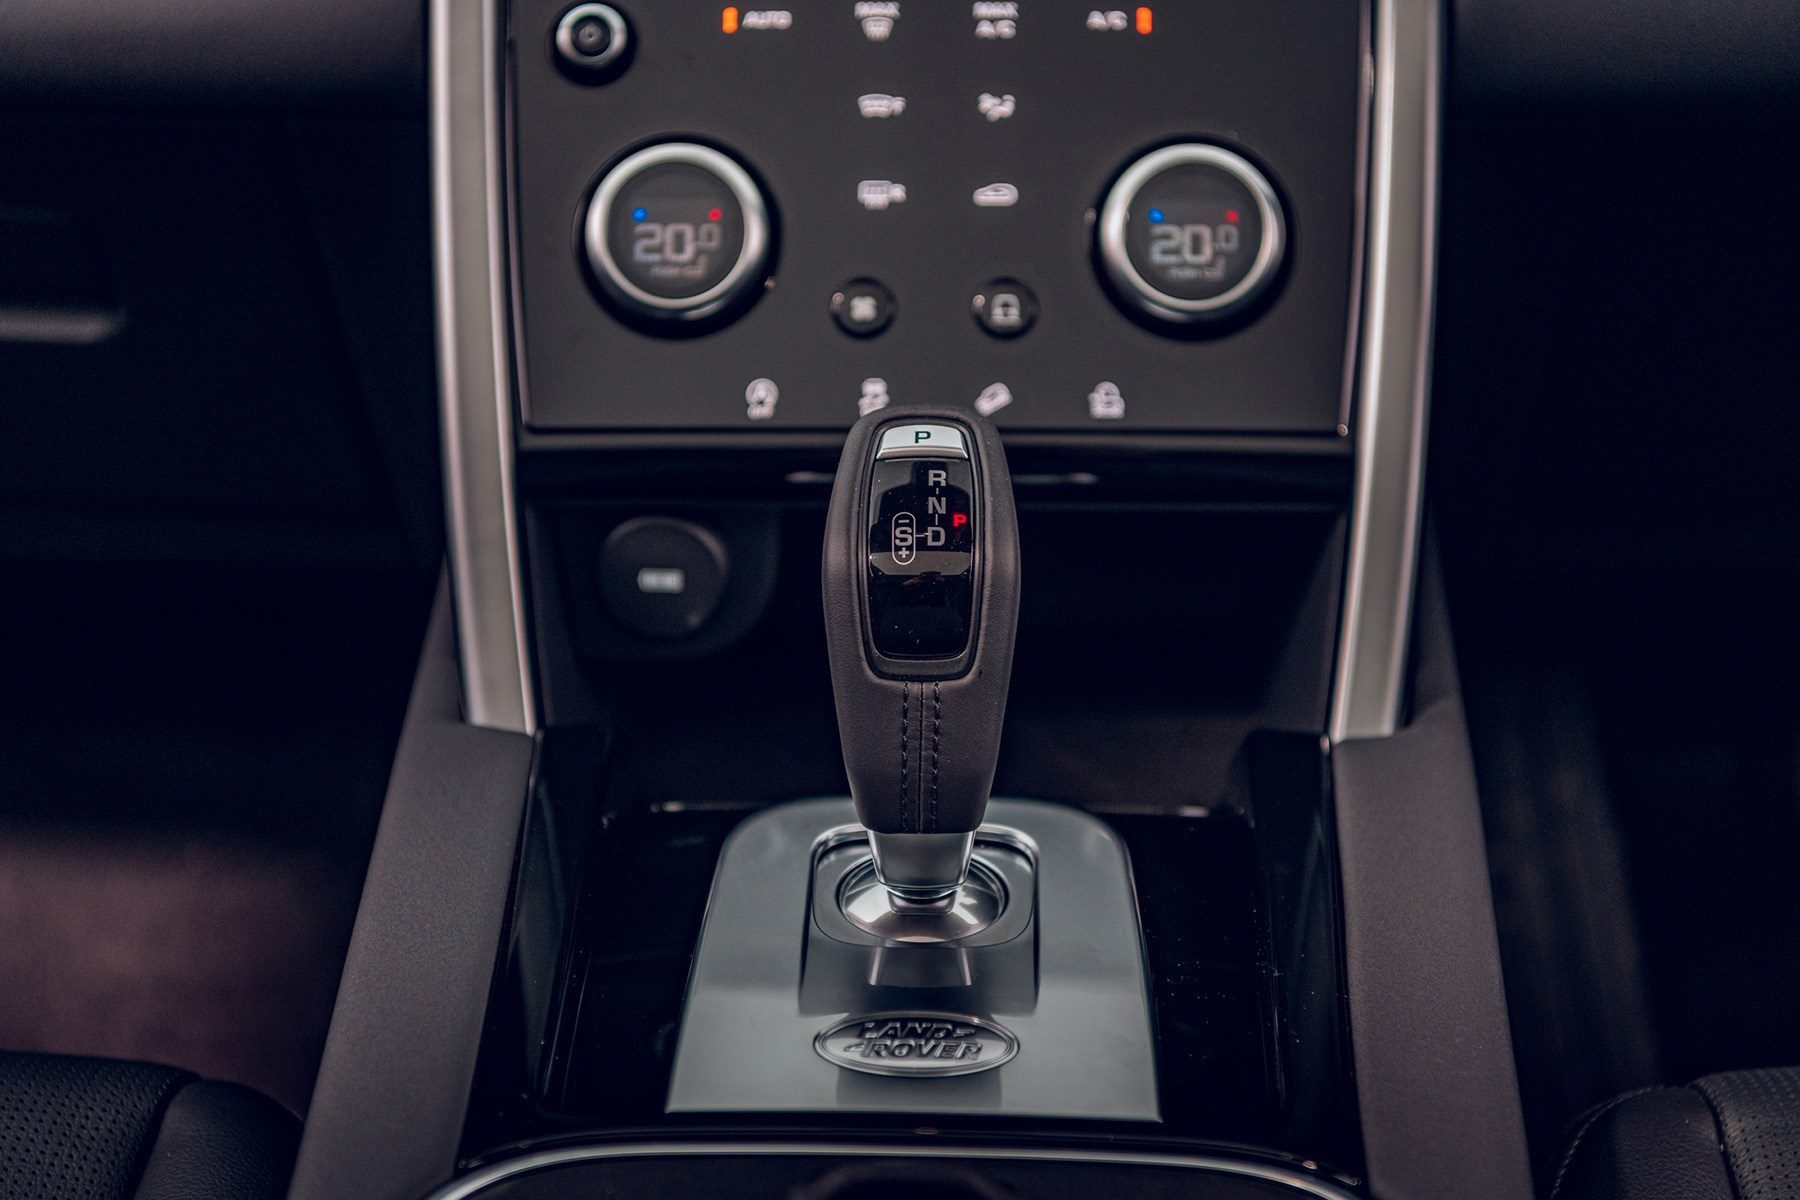 2019 Land Rover Discovery Sport automatic gearbox